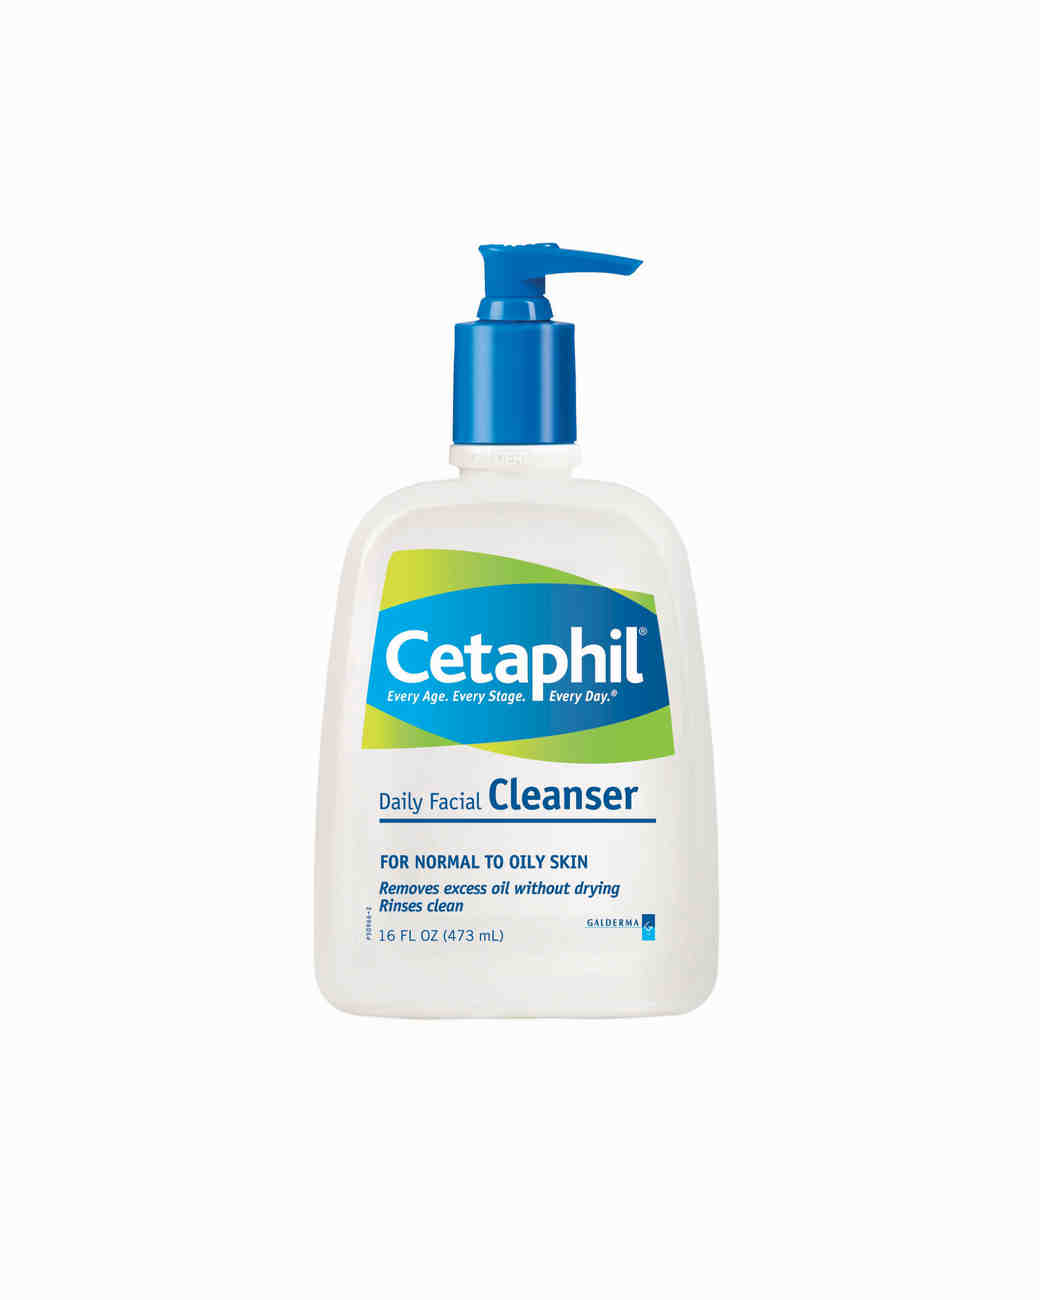 cetaphil-daily-facial-cleanser-0314.jpg